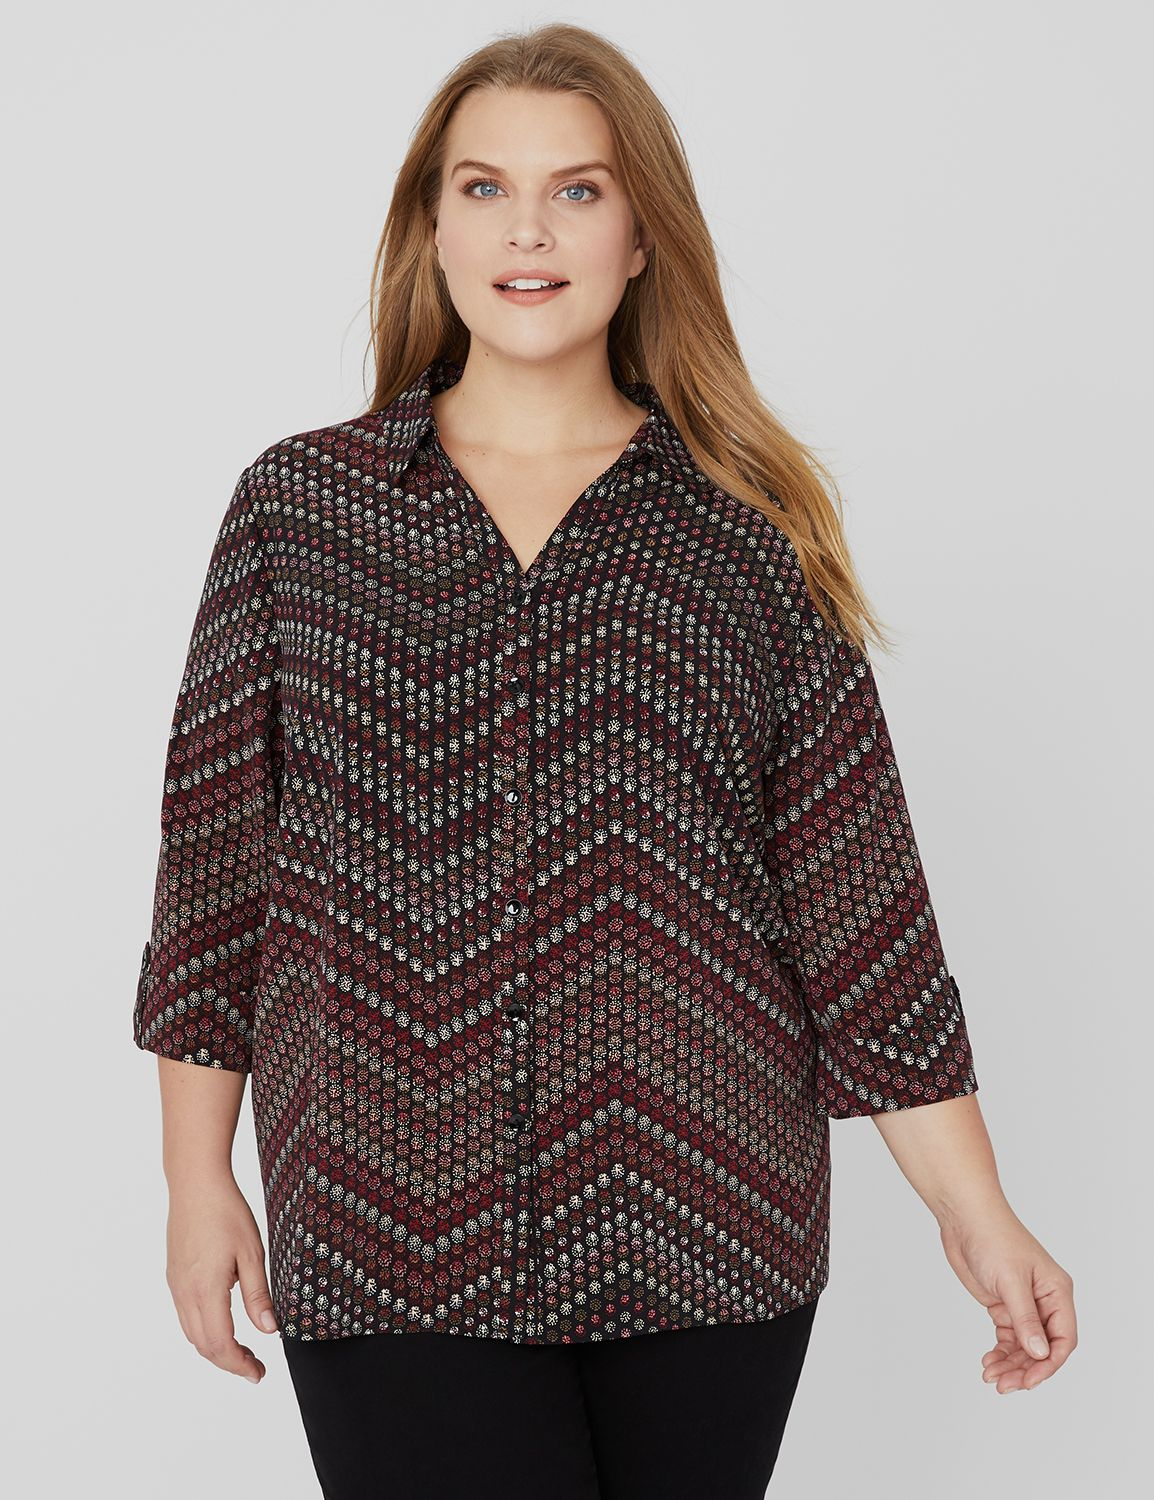 Allover Print Buttonfront 3/4 Slv Collared CDC Blouse MP-300094040